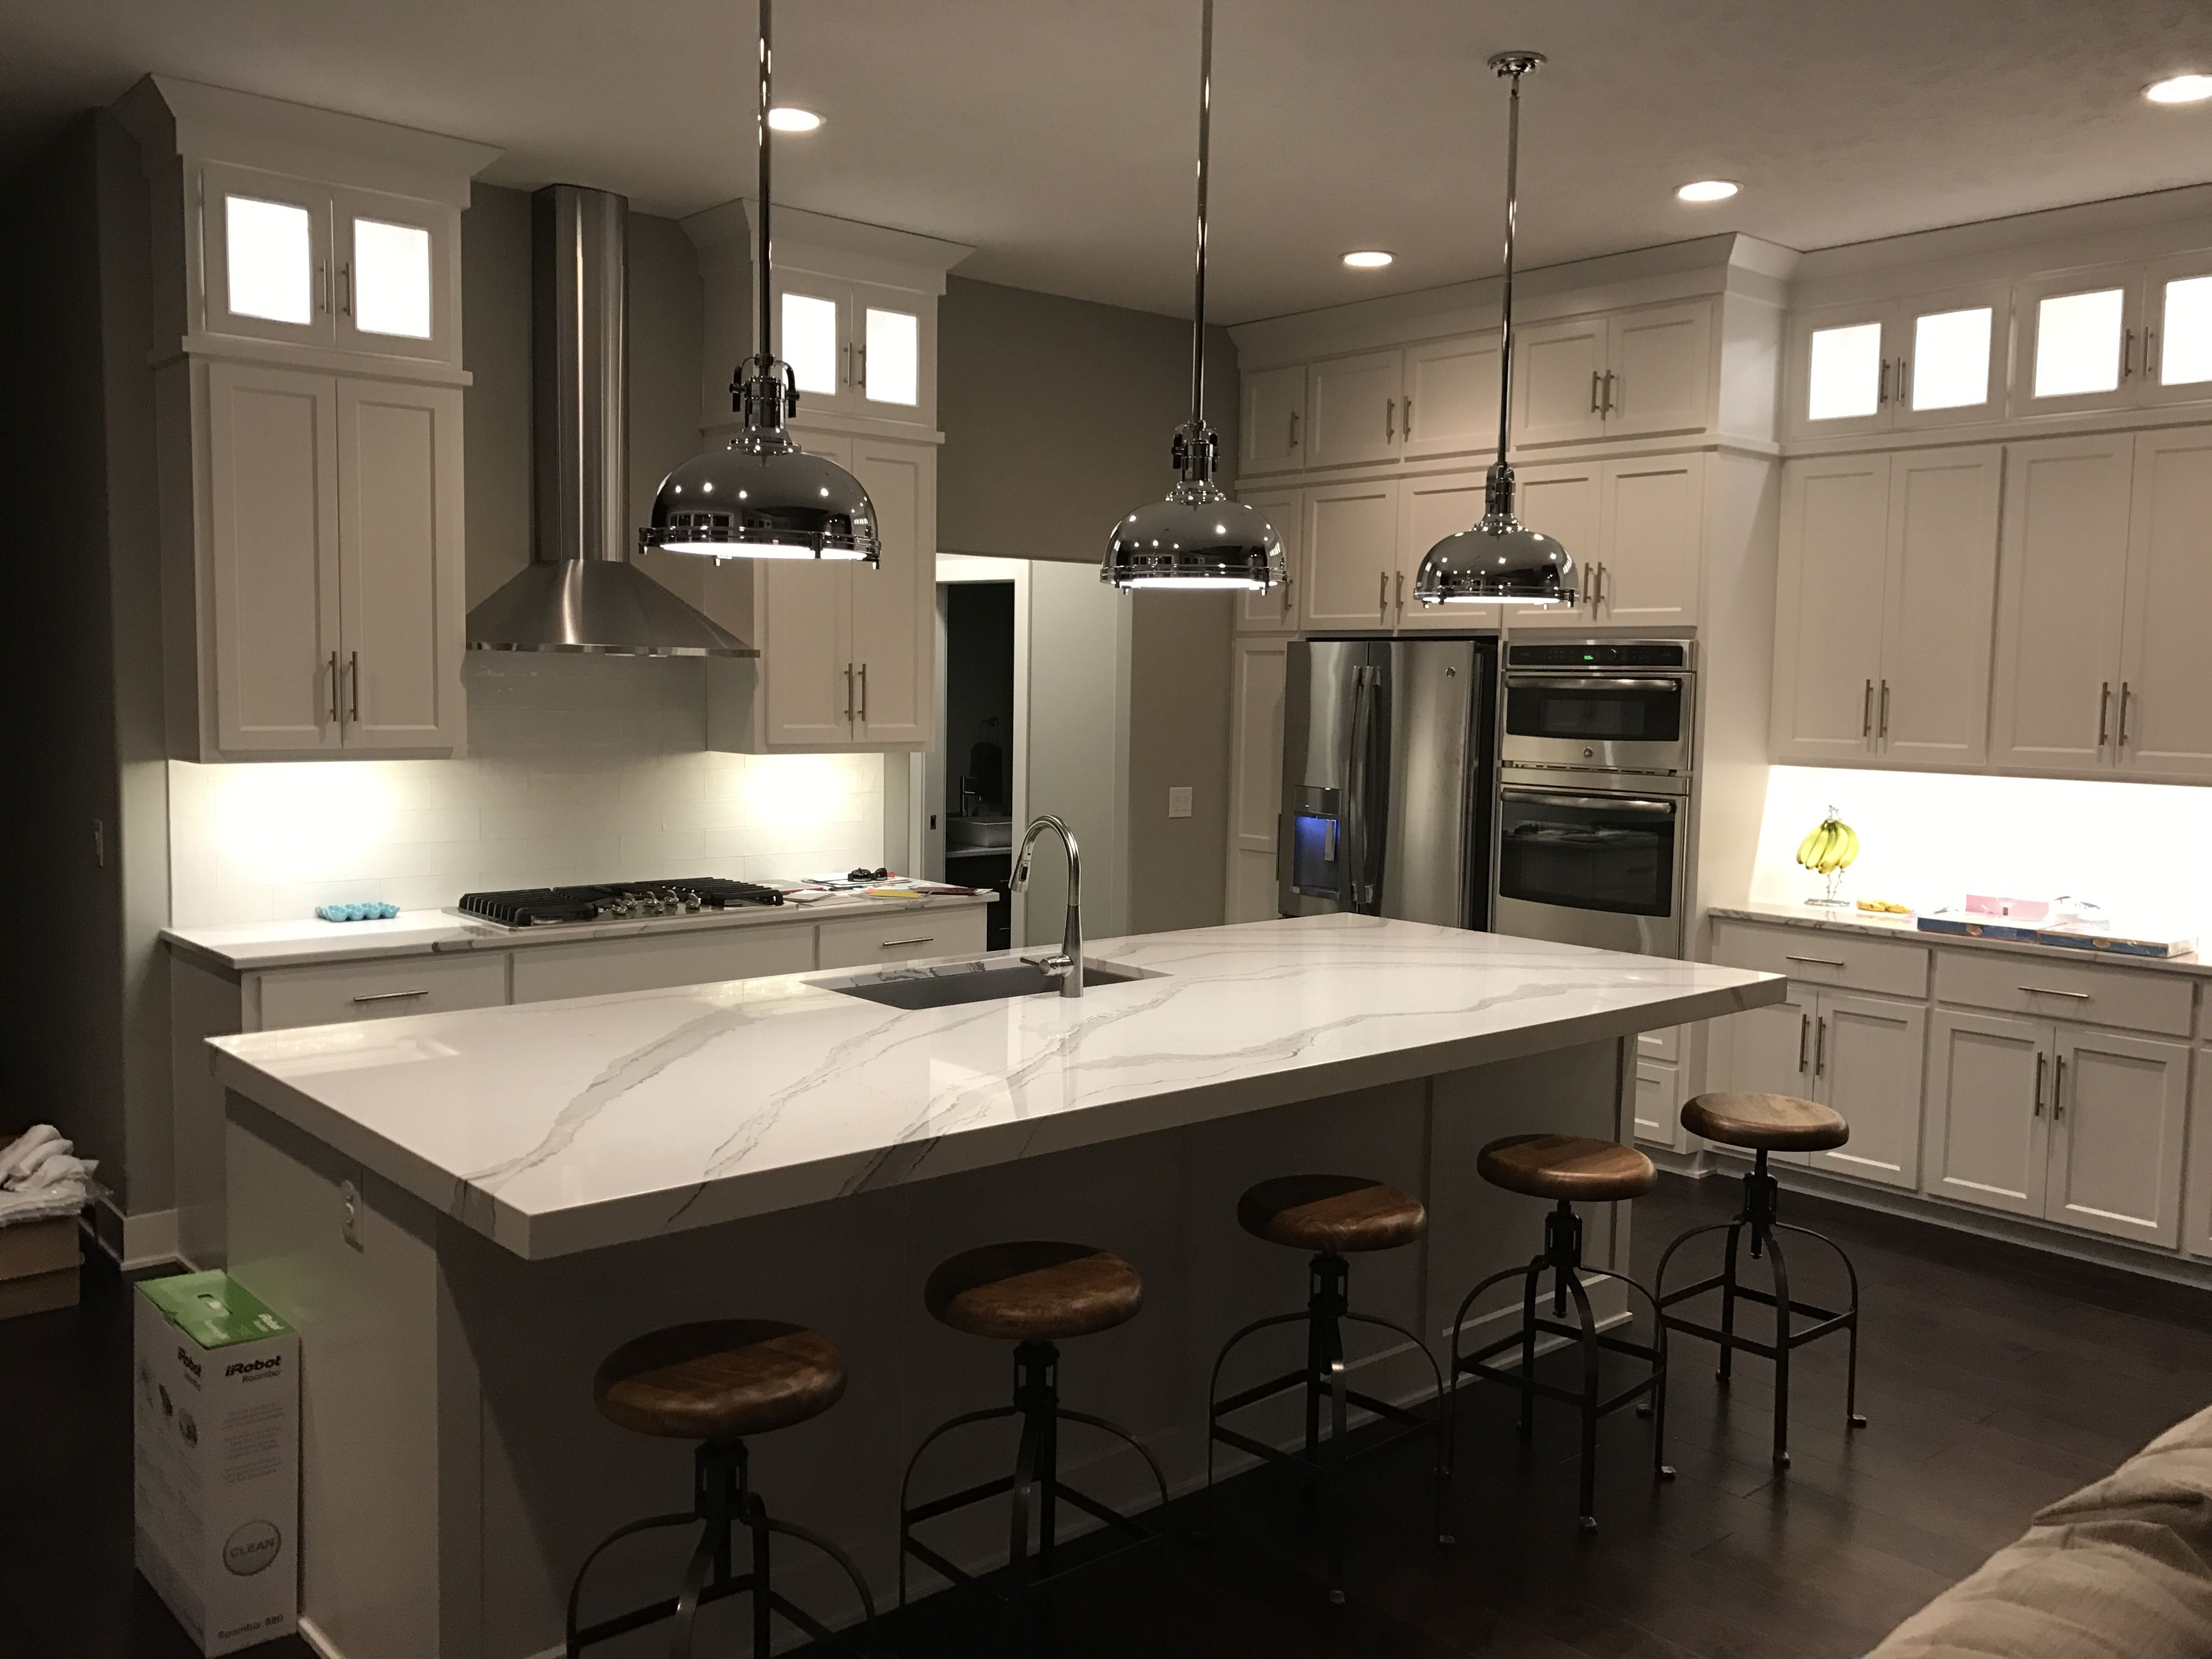 My Kitchen Design And Layout With 10 Foot Island Kitchen Design